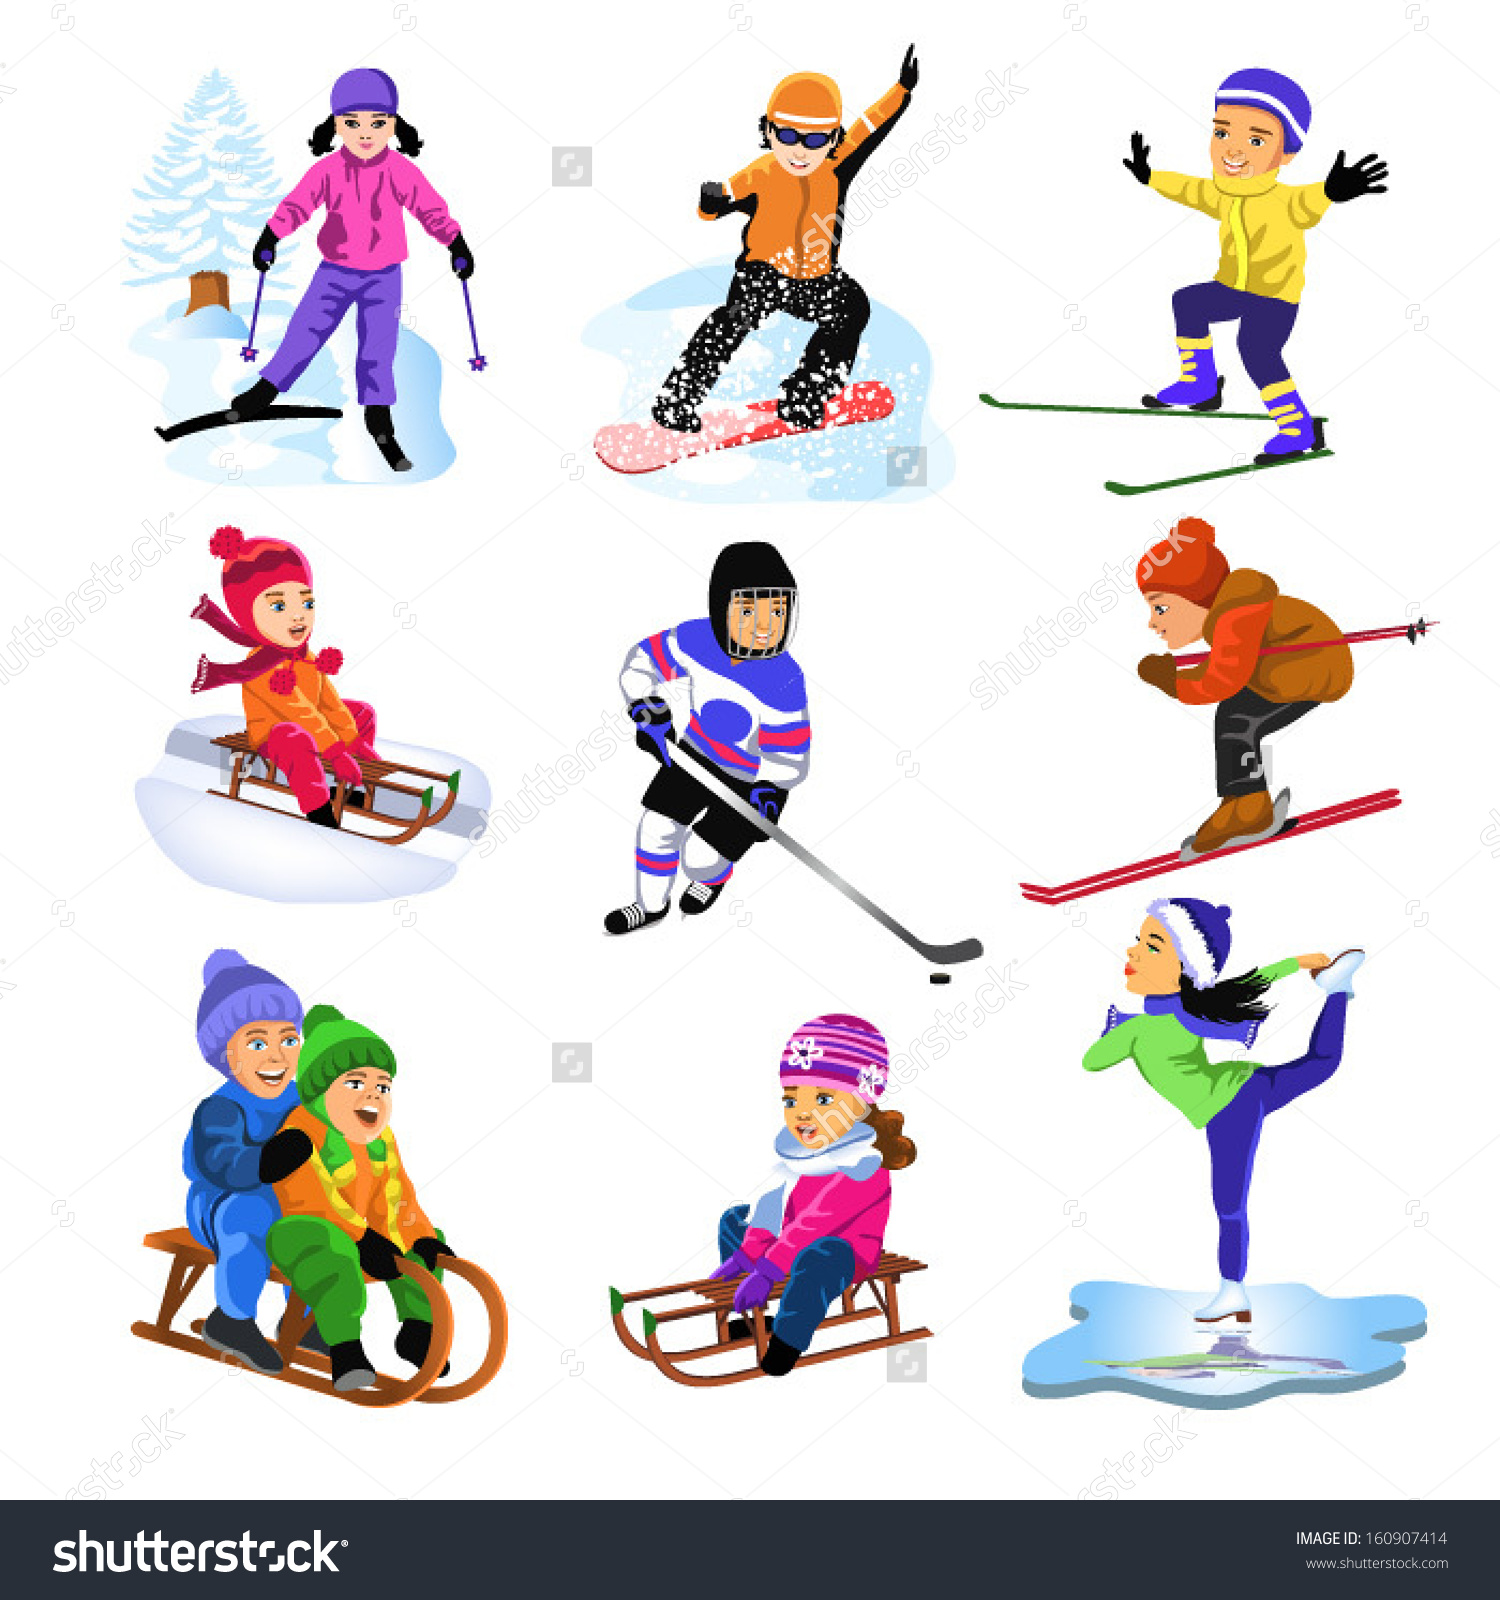 Clipart winter sports kids.